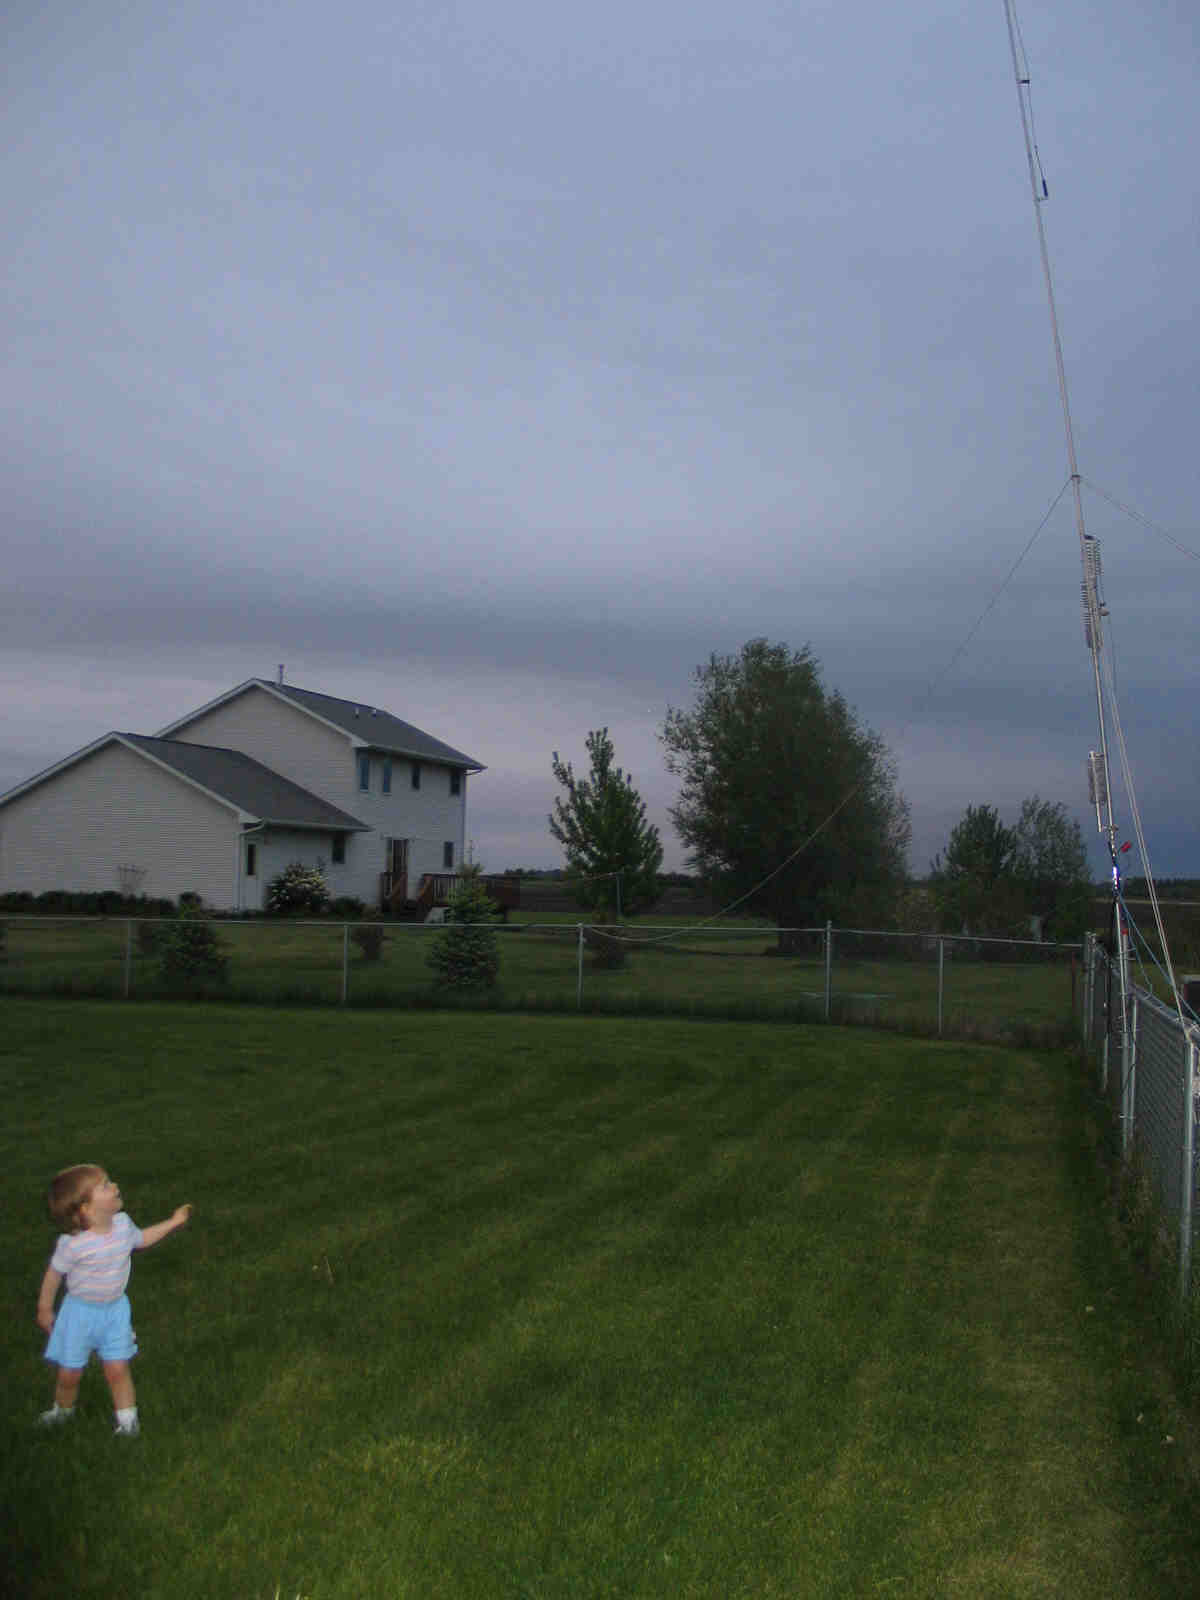 Butternut 9 band antenna